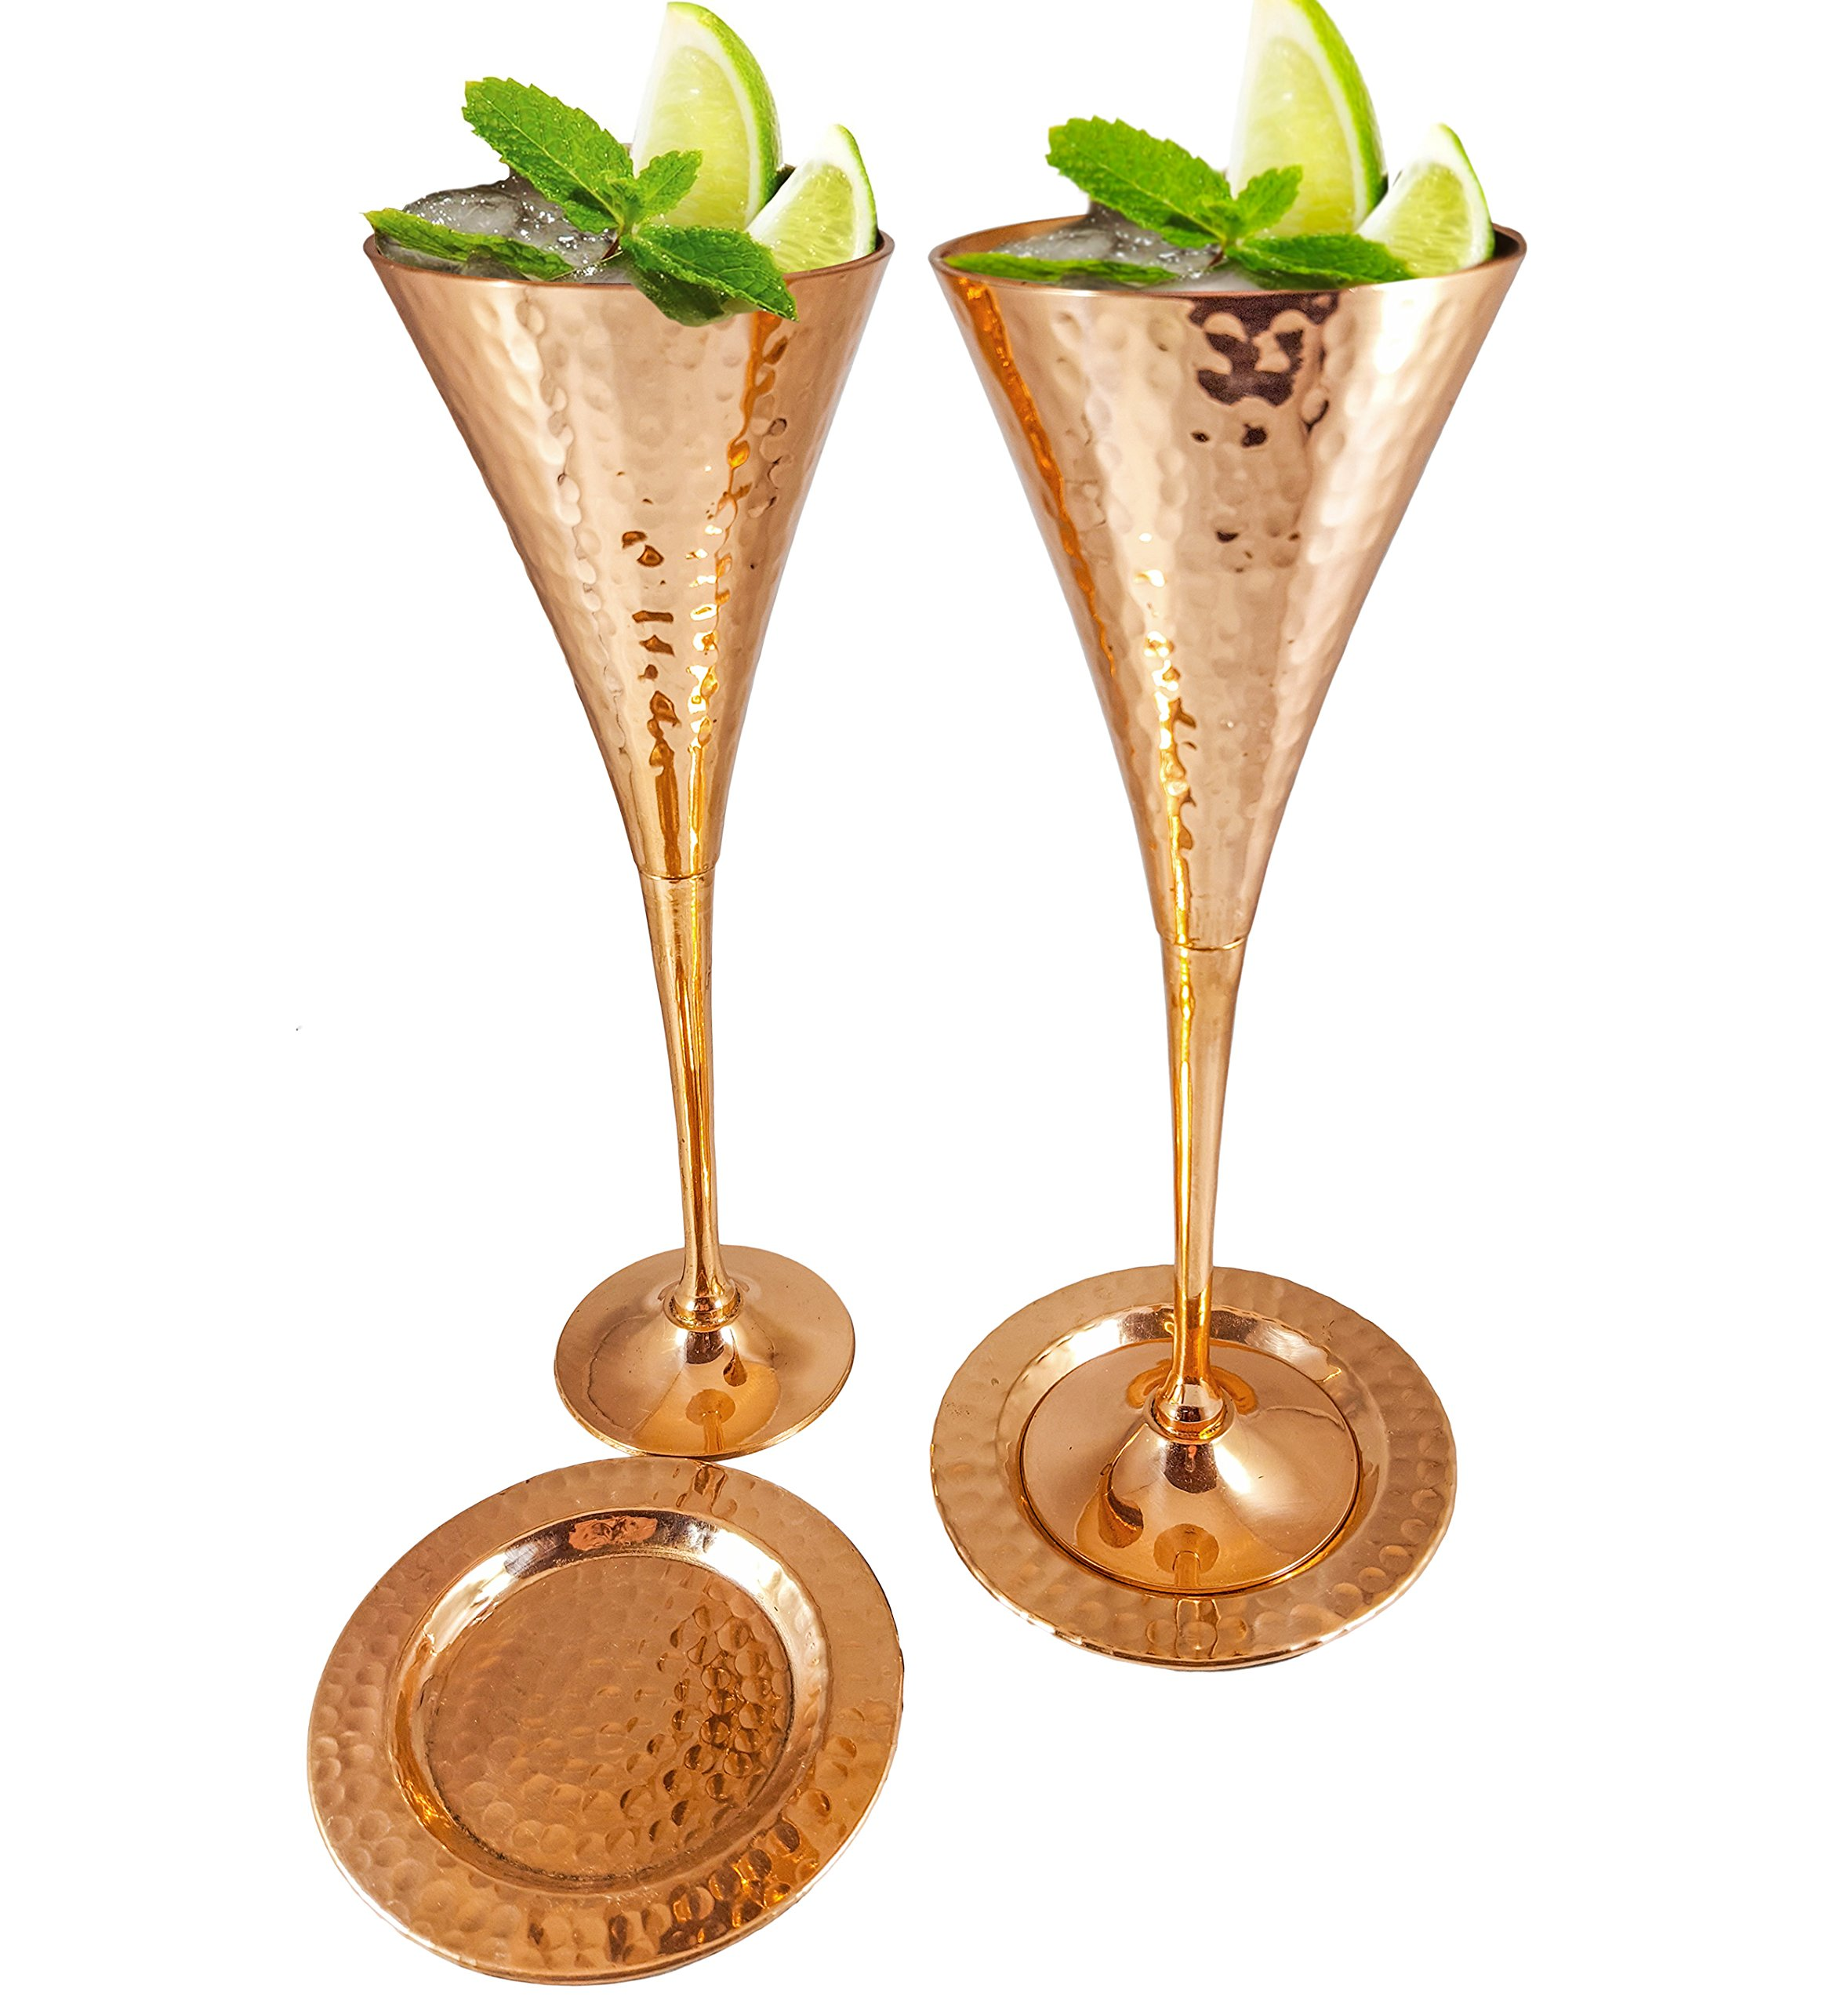 Moscow Mule Copper Flutes Set of 4 with Matching Pure Copper Coasters for Champagne Mules, Appetizers, Weddings. Kamojo Gift Set